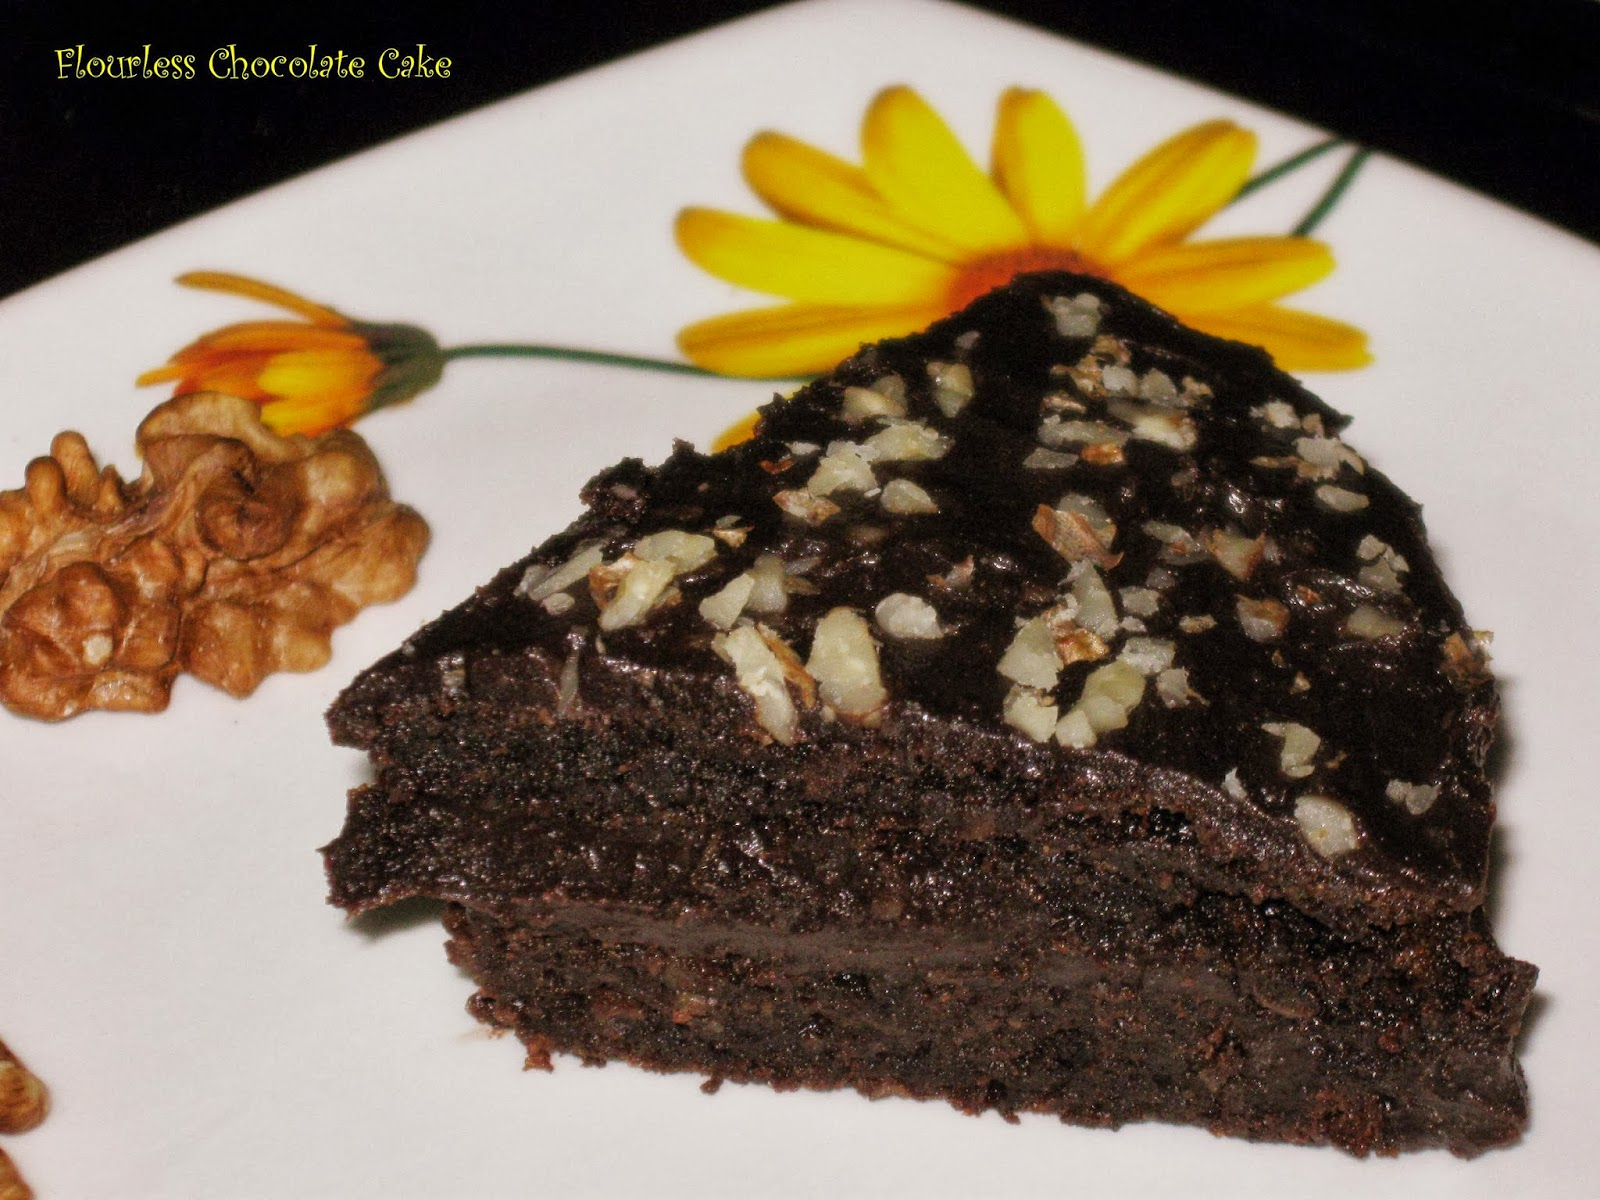 Palate's Desire: Flourless Chocolate Cake with Chocolate Ganache